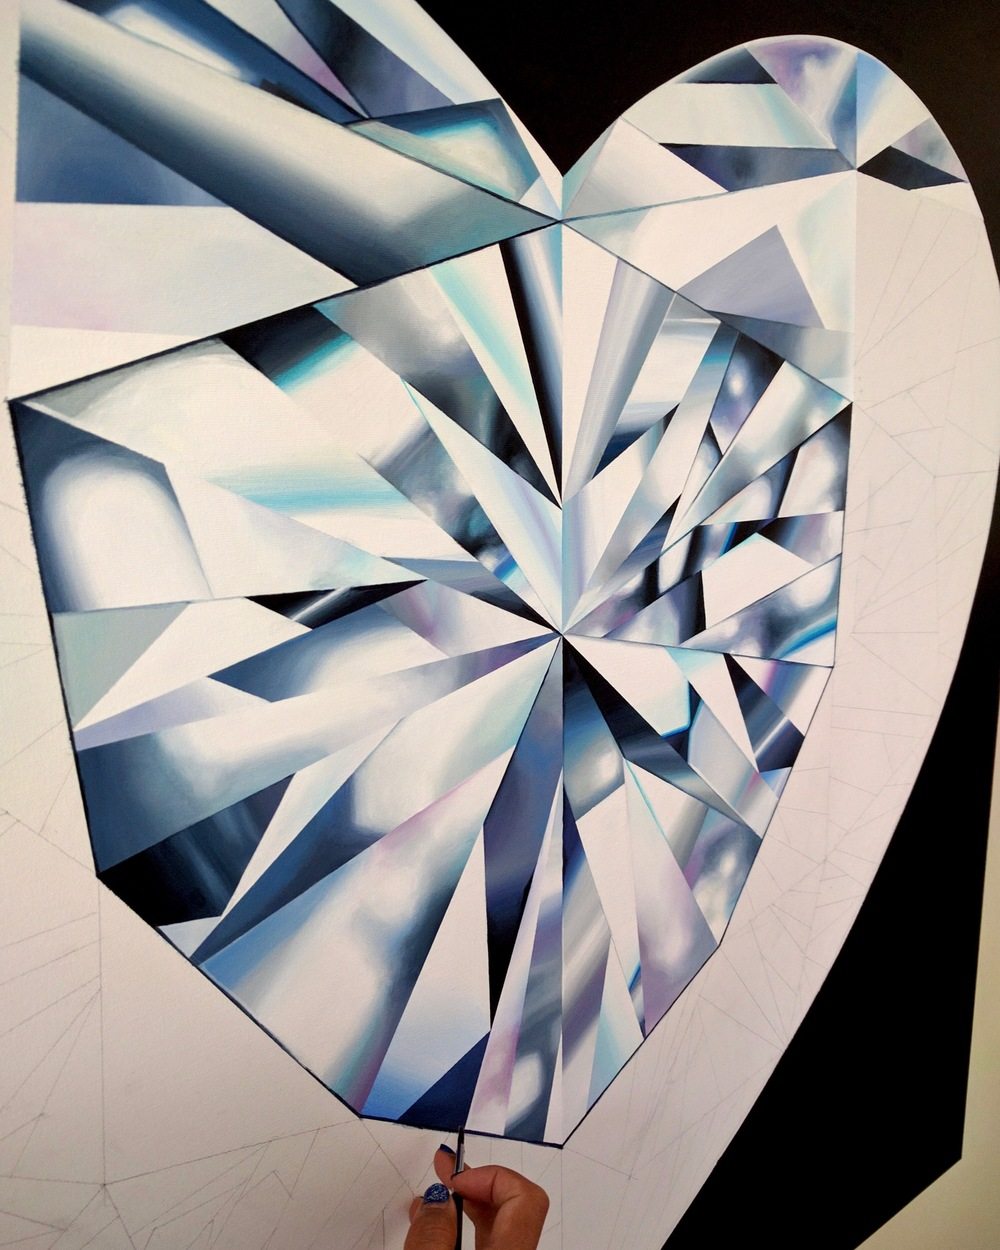 Close up detail. 'Pure Heart' - Portrait of a White Heart-Shaped Diamond. 36 x 36 inches. Acrylic on Canvas. ©Reena Ahluwalia